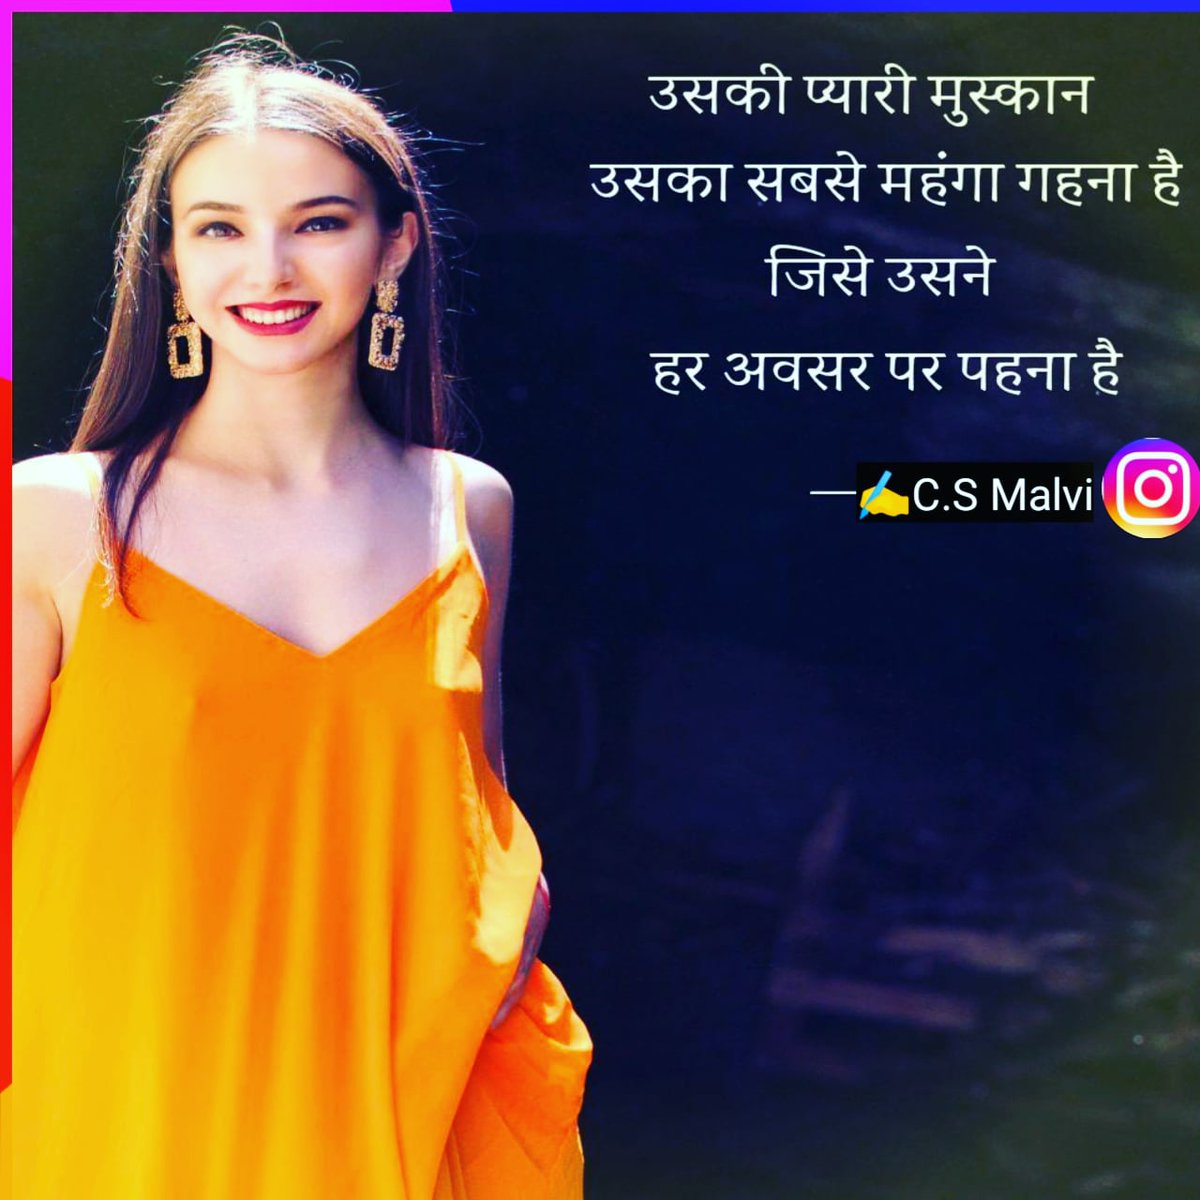 ✍️मुस्कान।।   @CSMalvi1  । । । । । । । #smile #instagood #love #photooftheday #picoftheday #followme #follow #instadaily #happy #food #instalike #style #girl #friends #cute #fun #like4like #fashion #beautiful #nature #igers #art #me #photography #summer #selfie #tbt #bestoftheday